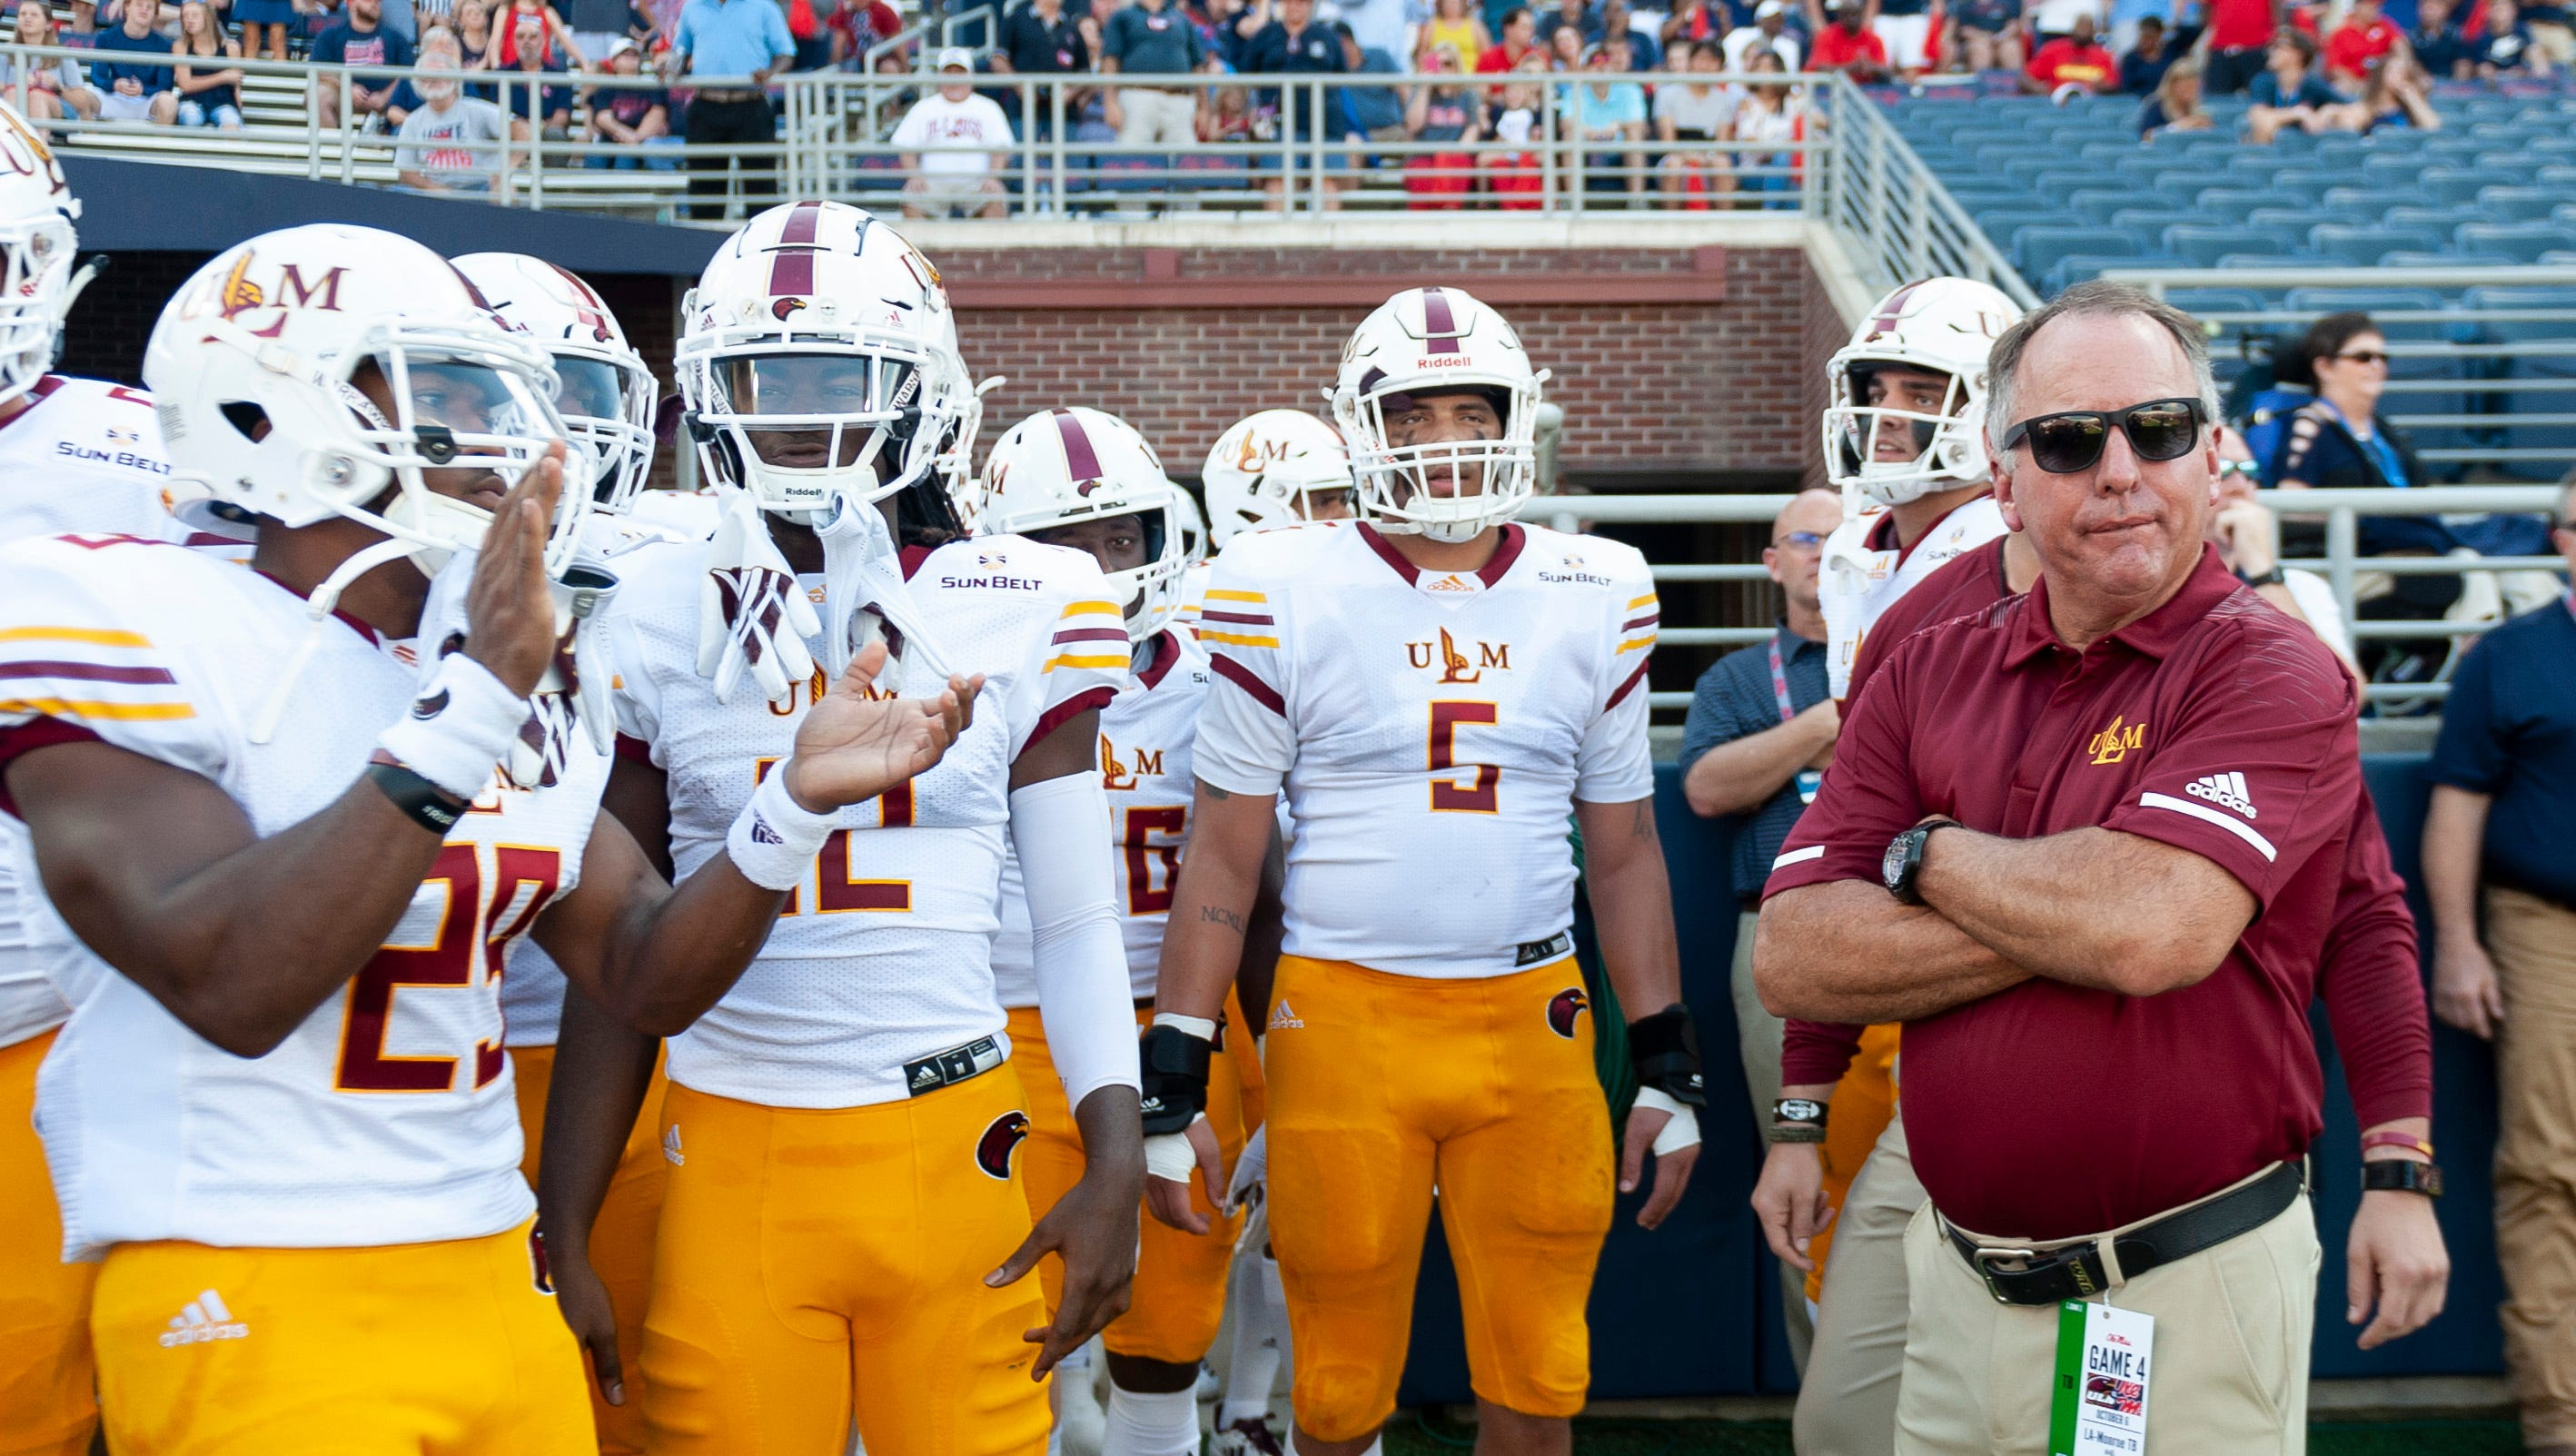 Oct 6, 2018; Oxford, MS, USA;  Louisiana Monroe Warhawks head coach Matt Viator at right waits to lead his team onto the field to face the Mississippi Rebels before the first half at Vaught-Hemingway Stadium. Mandatory Credit: Vasha Hunt-USA TODAY Sports